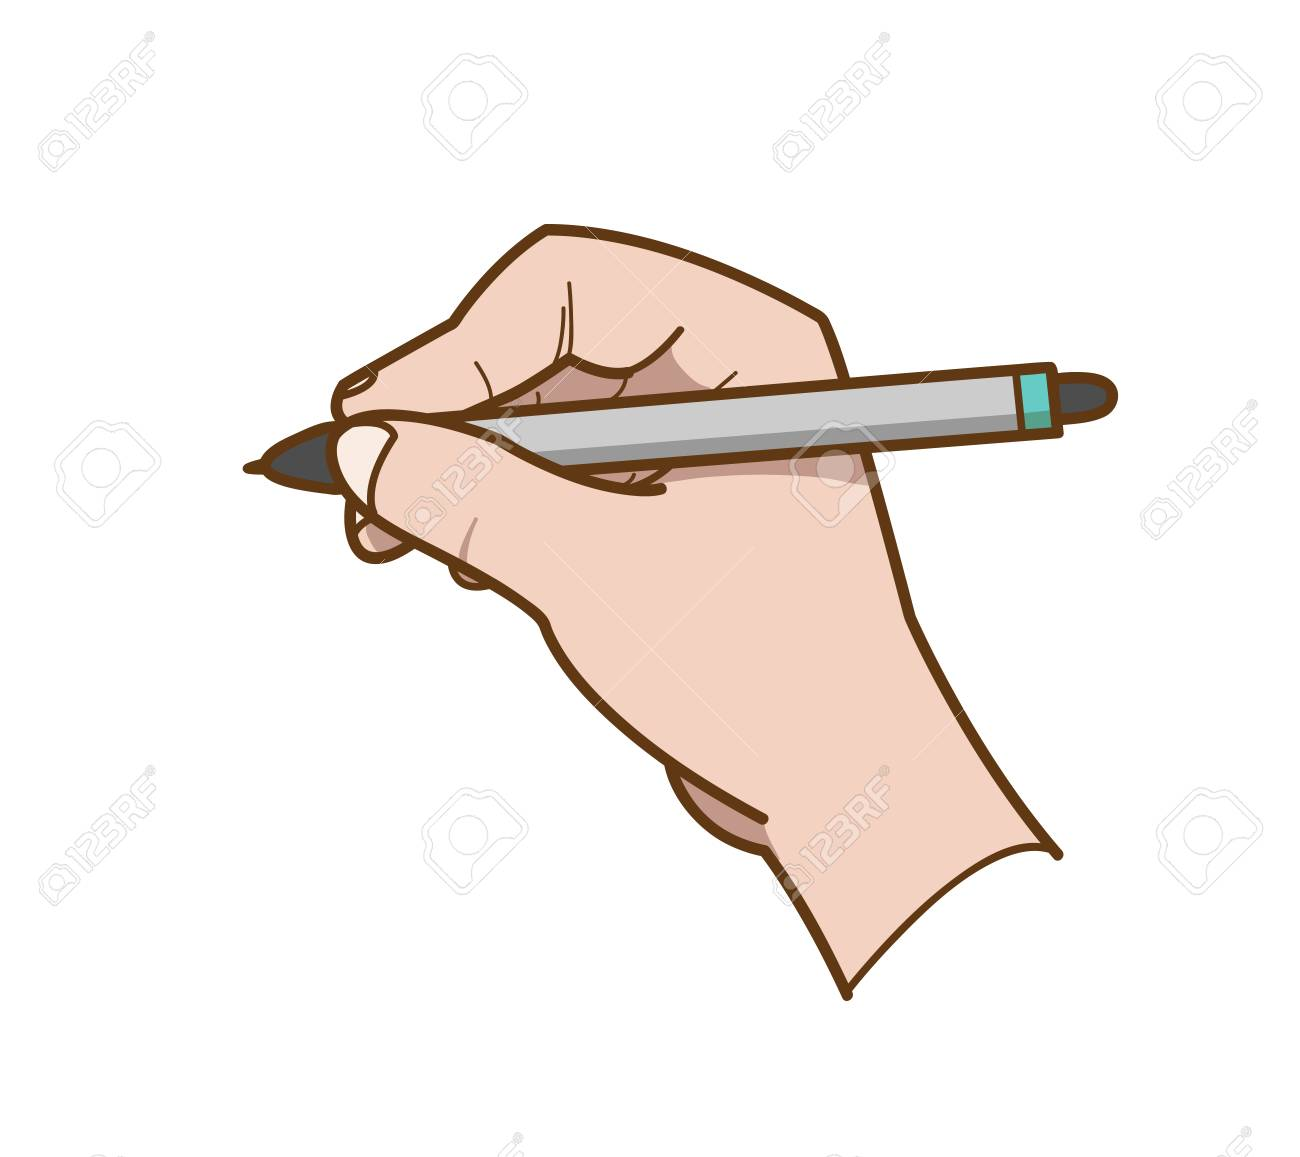 Hand drawing a hand drawn vector illustration of a hand holding a ballpoint about to